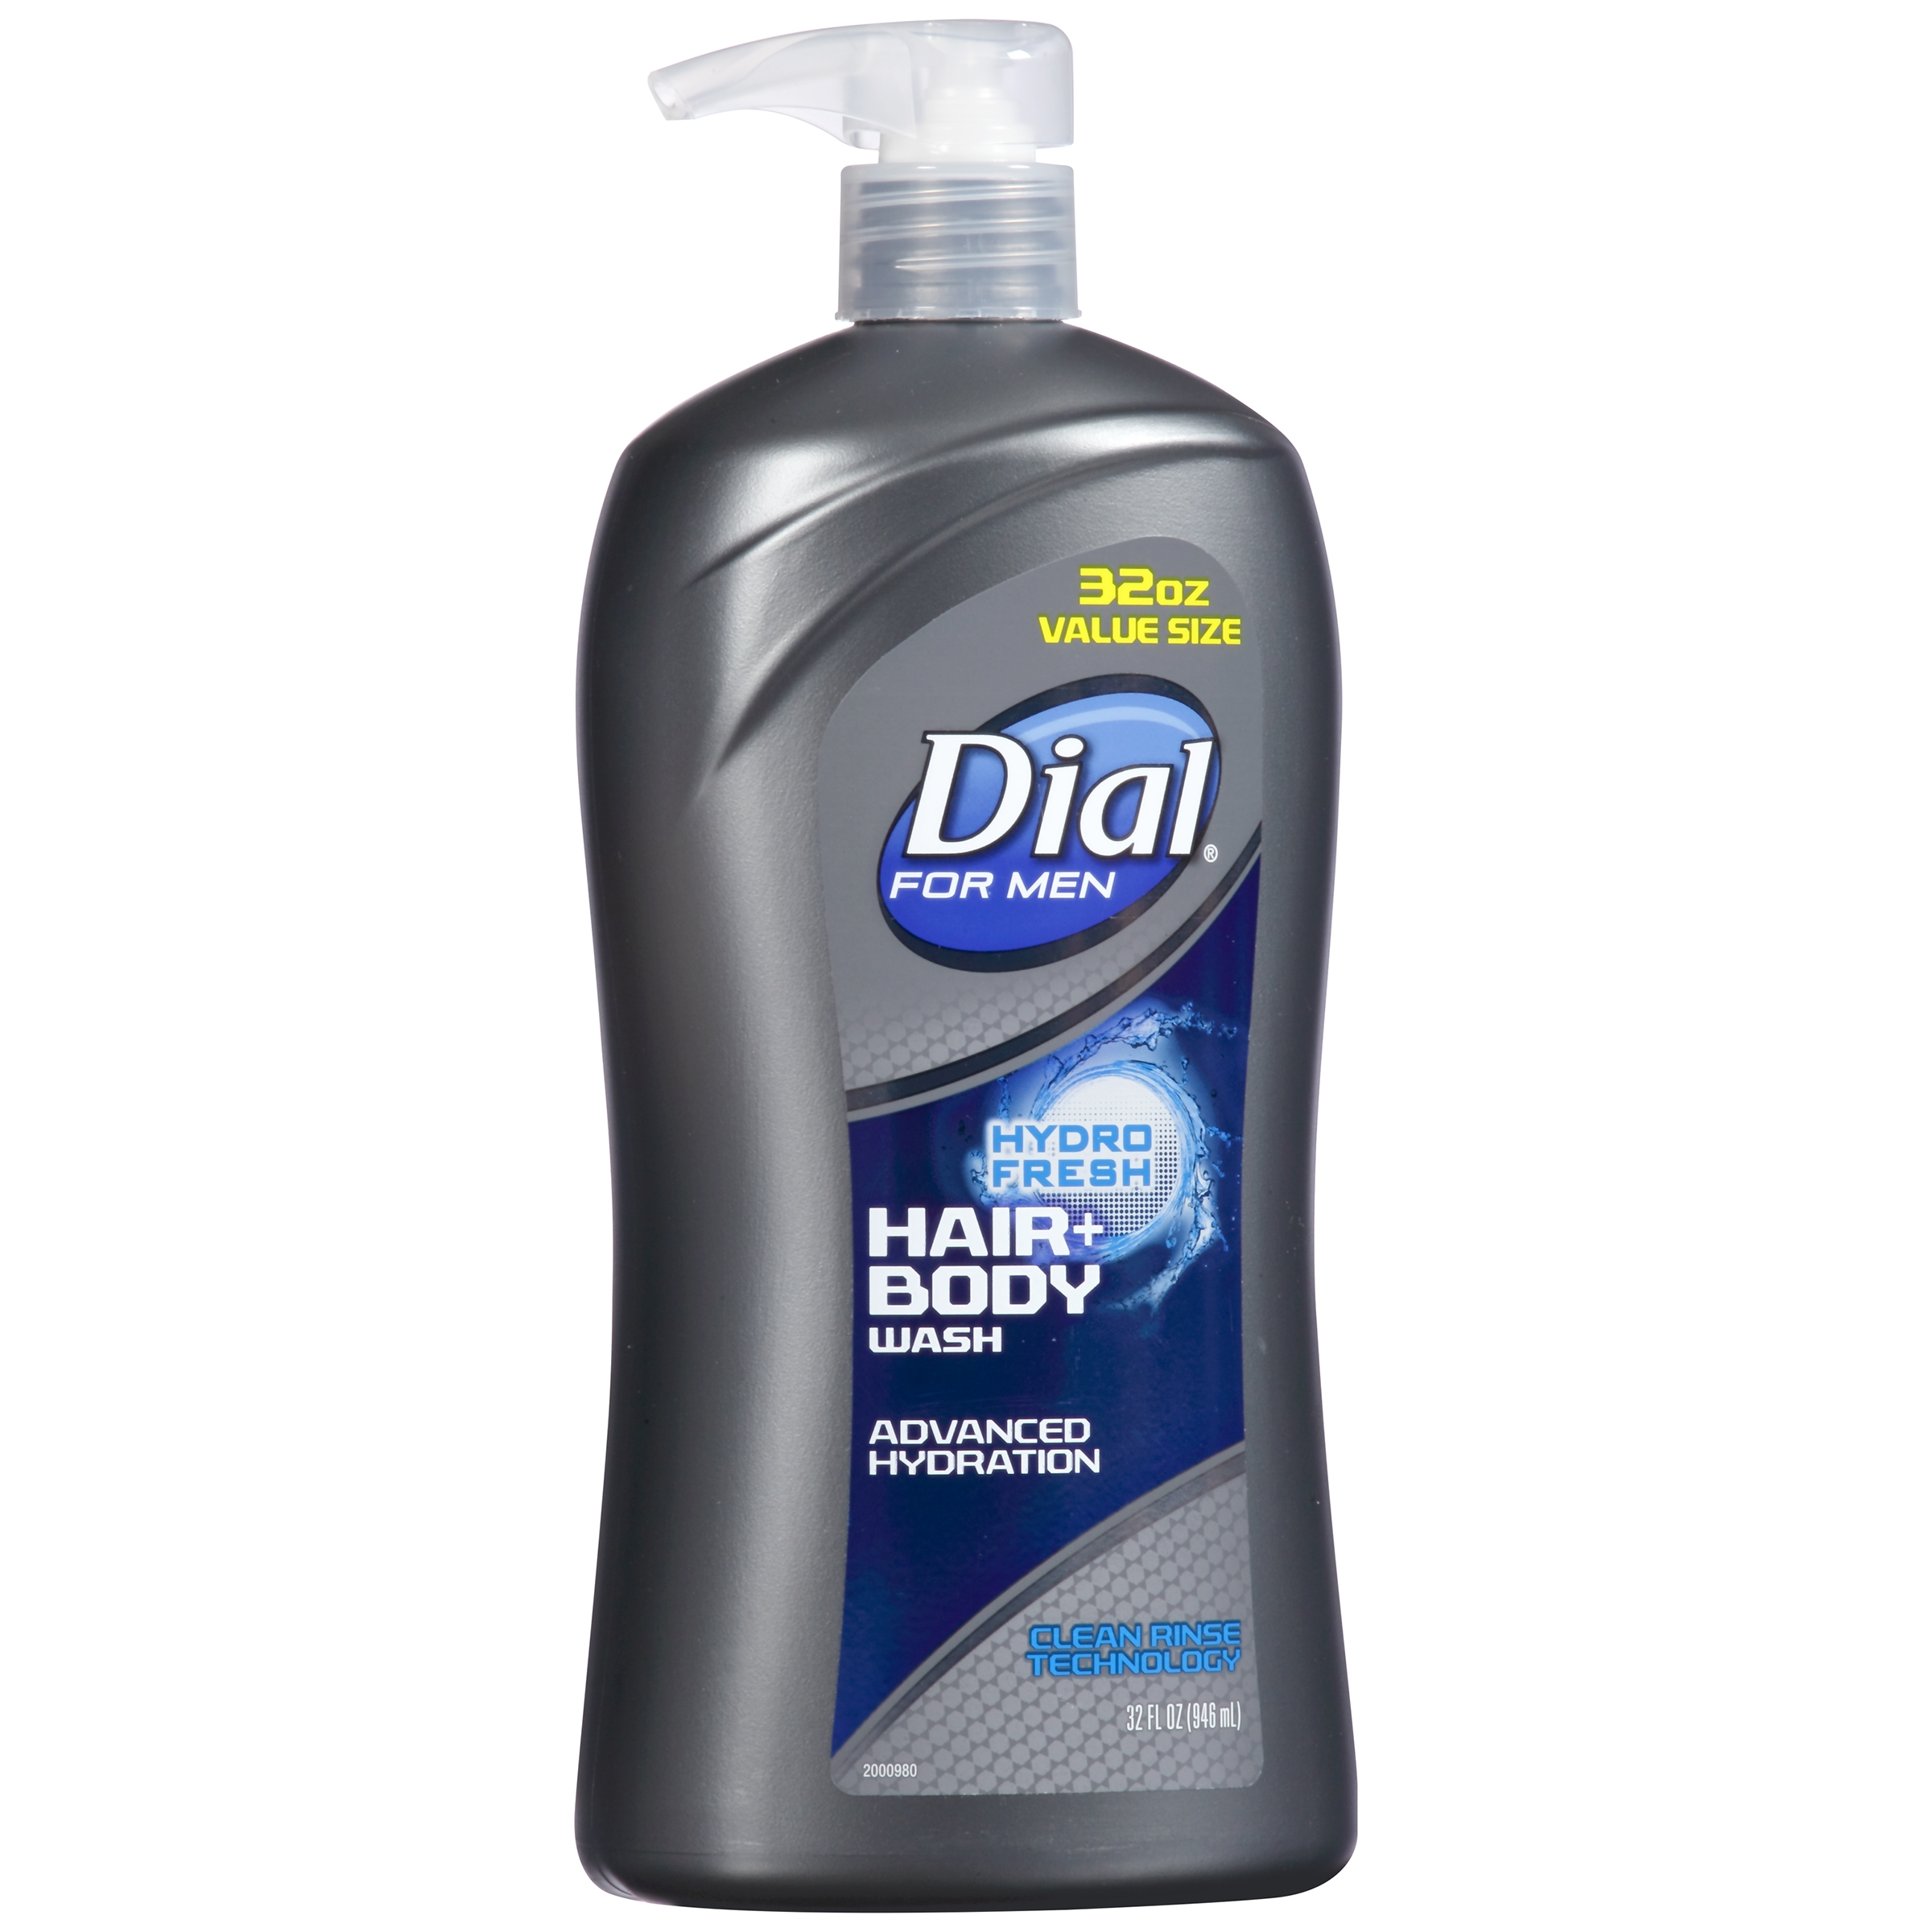 Dial For Men Hydro Fresh Hair+ Body Wash 32 fl. oz. Bottle by The Dial Corporation, a Henkel Company